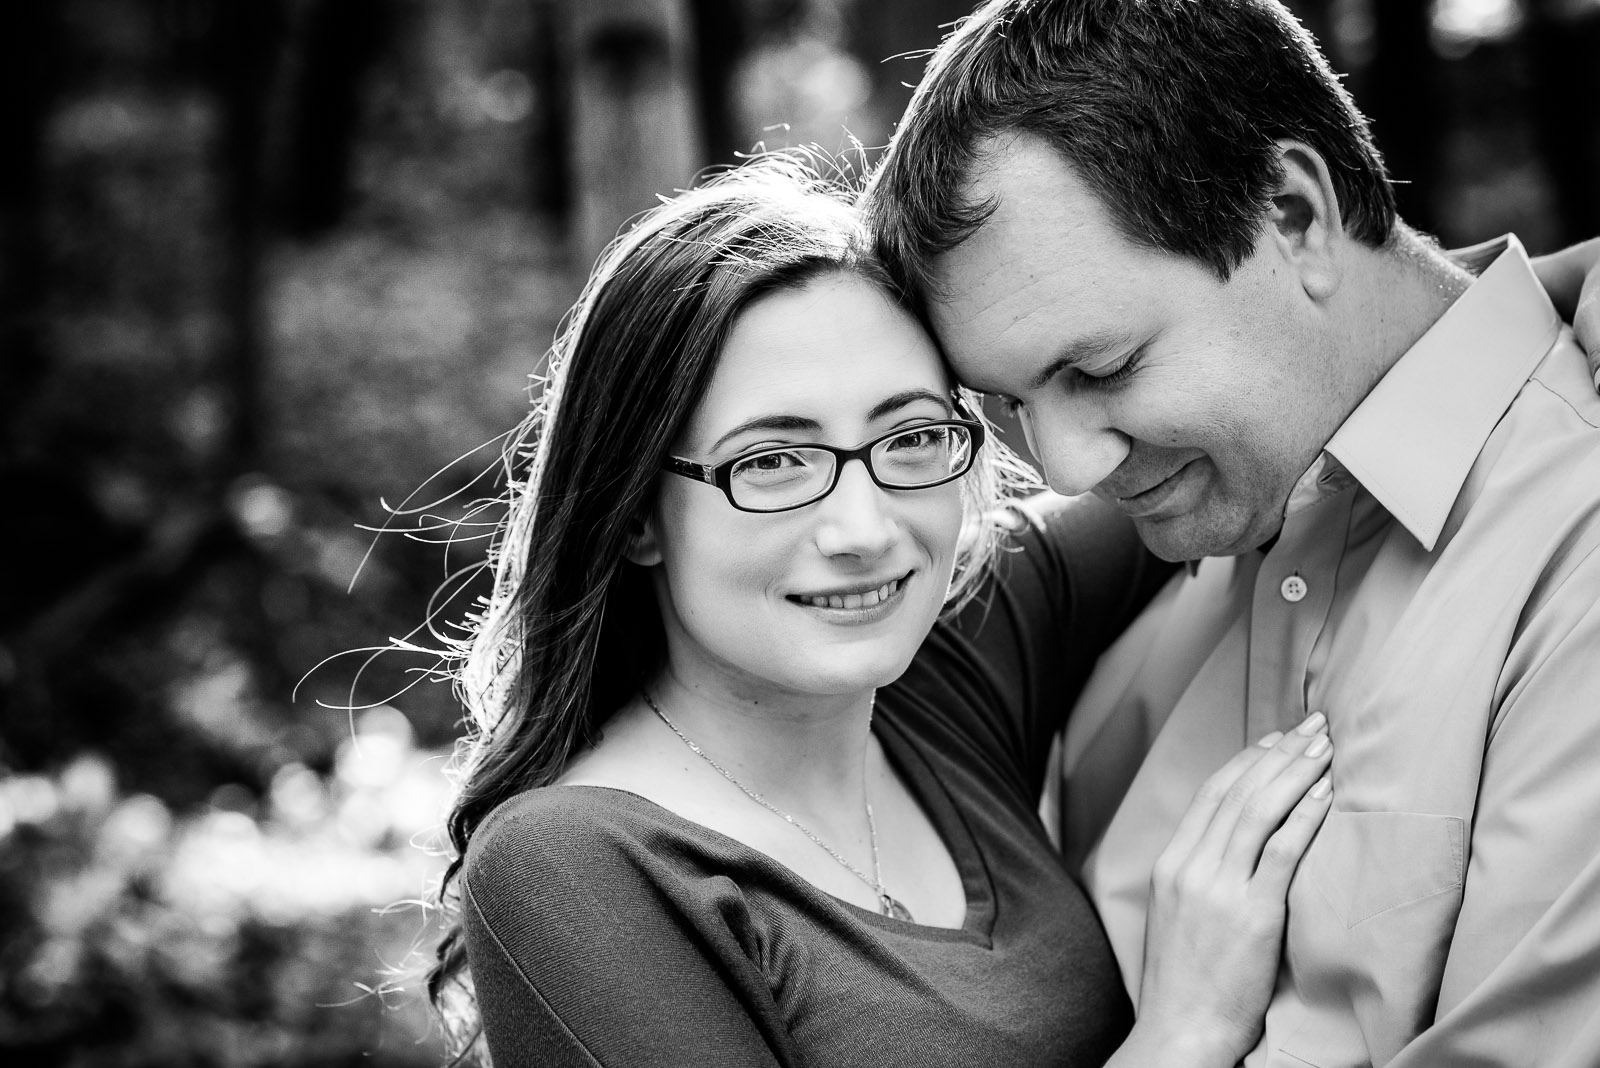 Eric_and_Christy_Photography_Blog_Julie_Adam-20